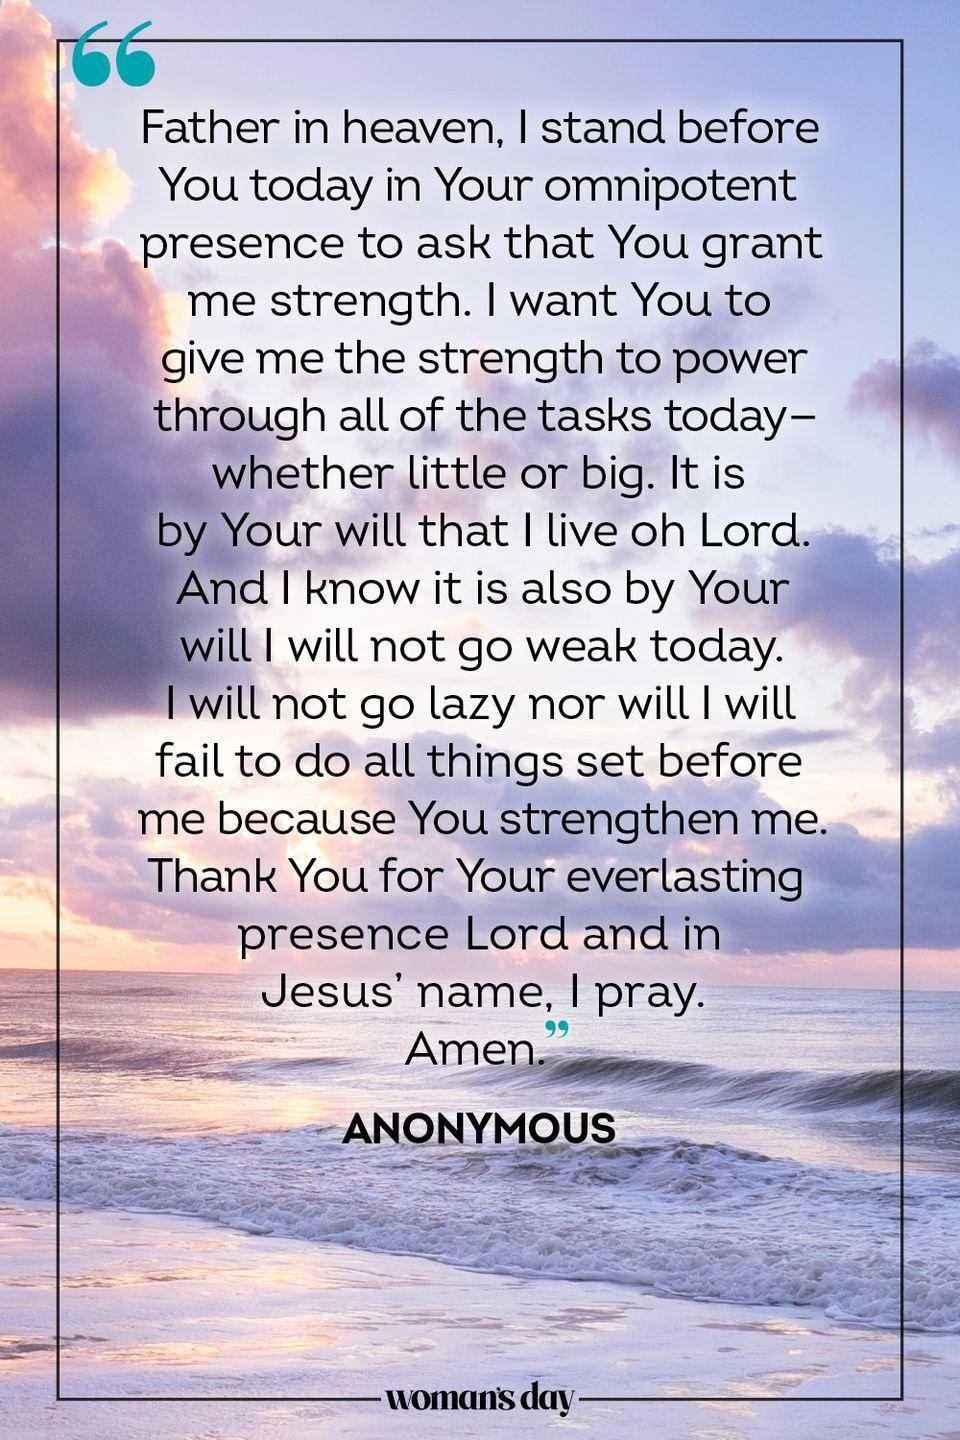 """<p>Father in heaven, I stand before You today in Your omnipotent presence to ask that You grant me strength. I want You to give me the strength to power through all of the tasks today — whether little or big. It is by Your will that I live oh Lord. And I know it is also by Your will I will not go weak today. I will not go lazy nor will I will fail to do all things set before me because You strengthen me. Thank You for Your everlasting presence Lord and in Jesus' name, I pray.</p><p>Amen.</p><p>— <a href=""""https://www.holylandprayer.com/prayer_for/powerful-prayers-for-today/"""" rel=""""nofollow noopener"""" target=""""_blank"""" data-ylk=""""slk:Anonymous"""" class=""""link rapid-noclick-resp"""">Anonymous</a></p>"""